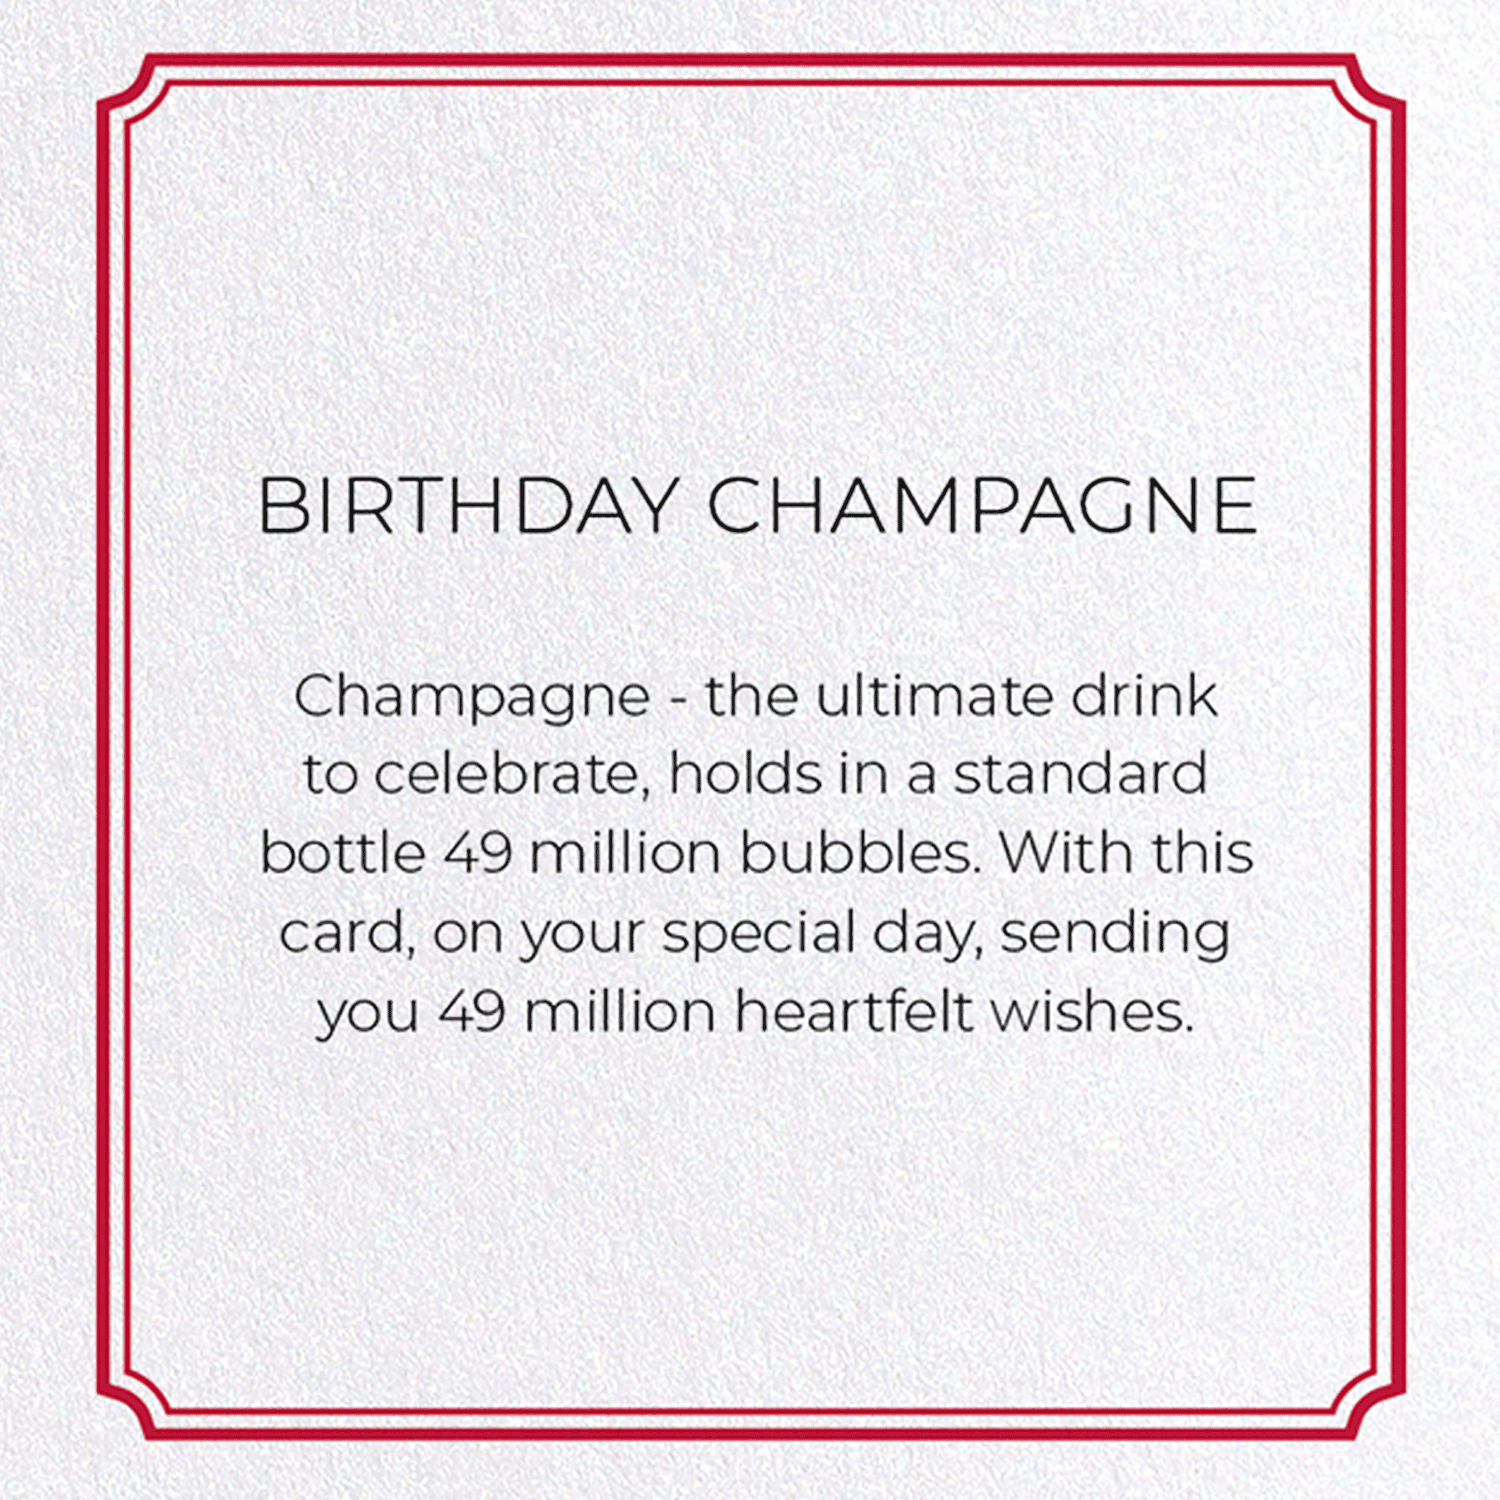 BIRTHDAY CHAMPAGNE